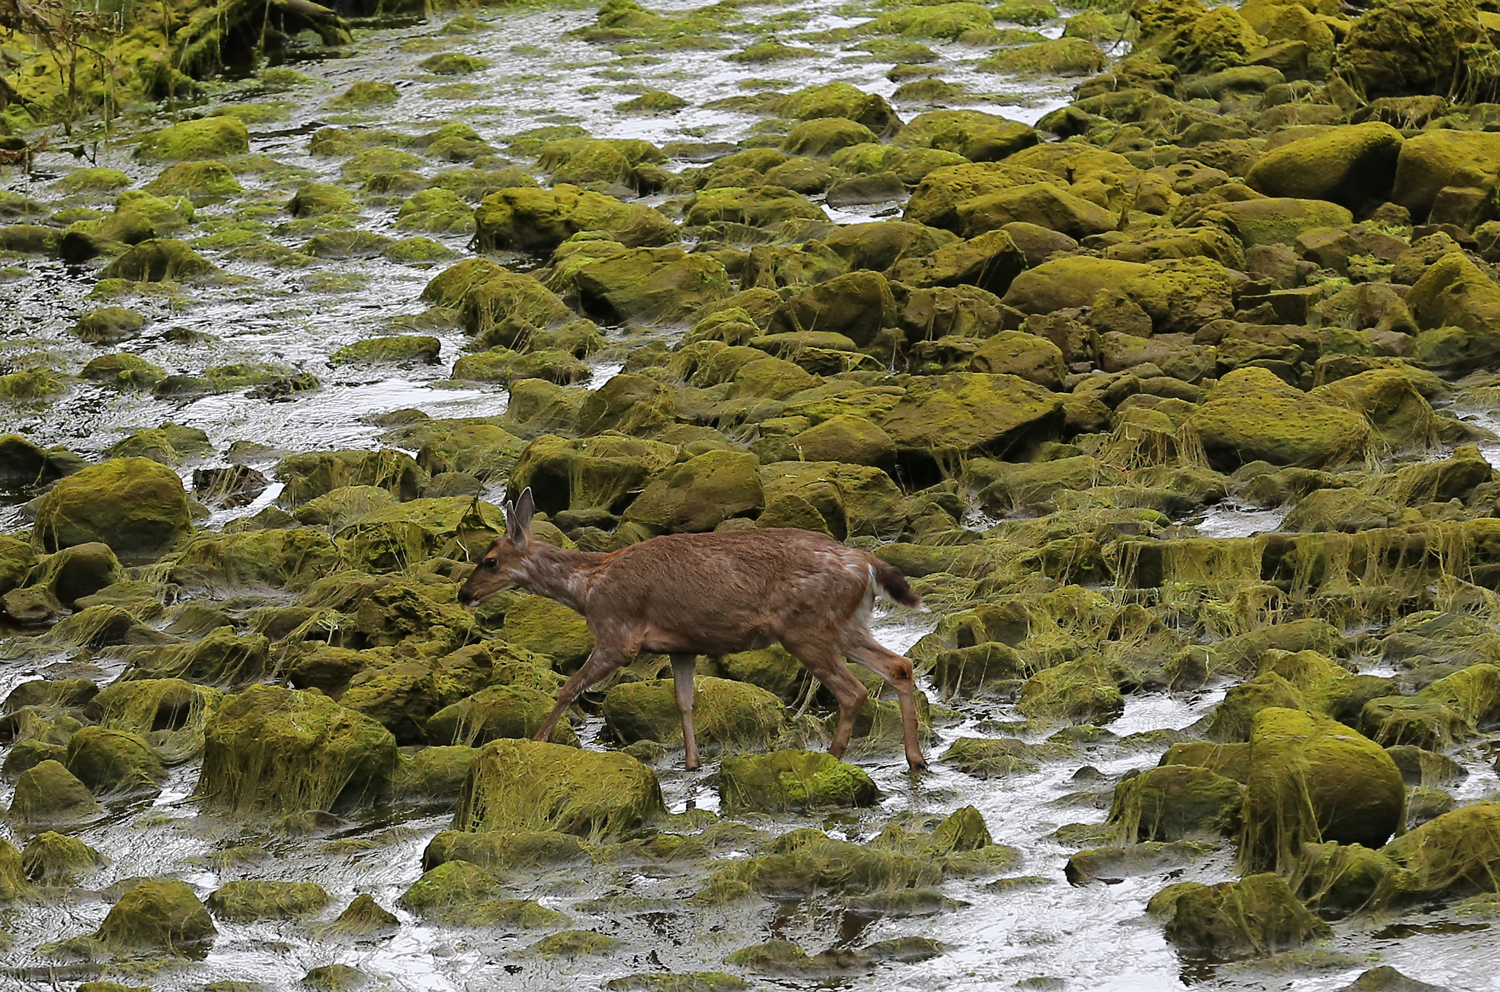 Sitka blacktail doe in Southeast Alaska walking through slimy seaweed